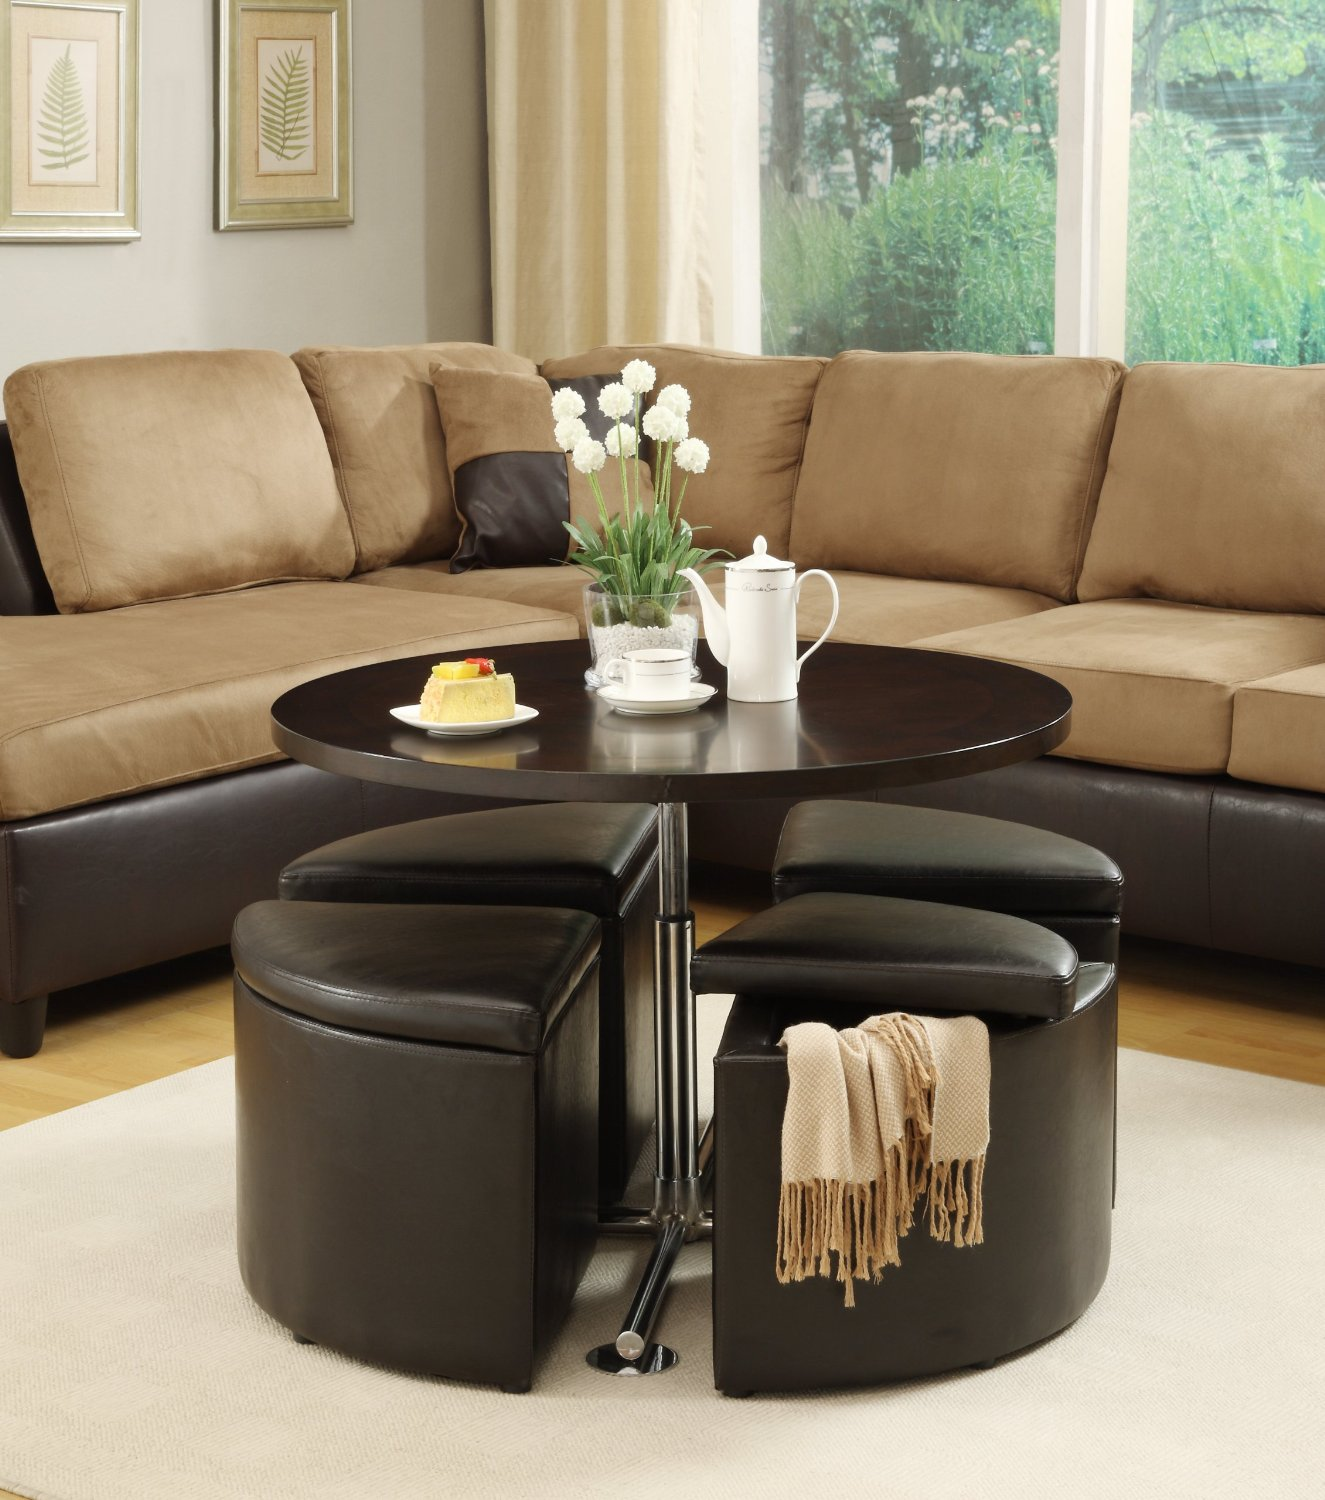 Adj Height Round Coffee Table With 4 Wedge Storage Ottomans Underneath